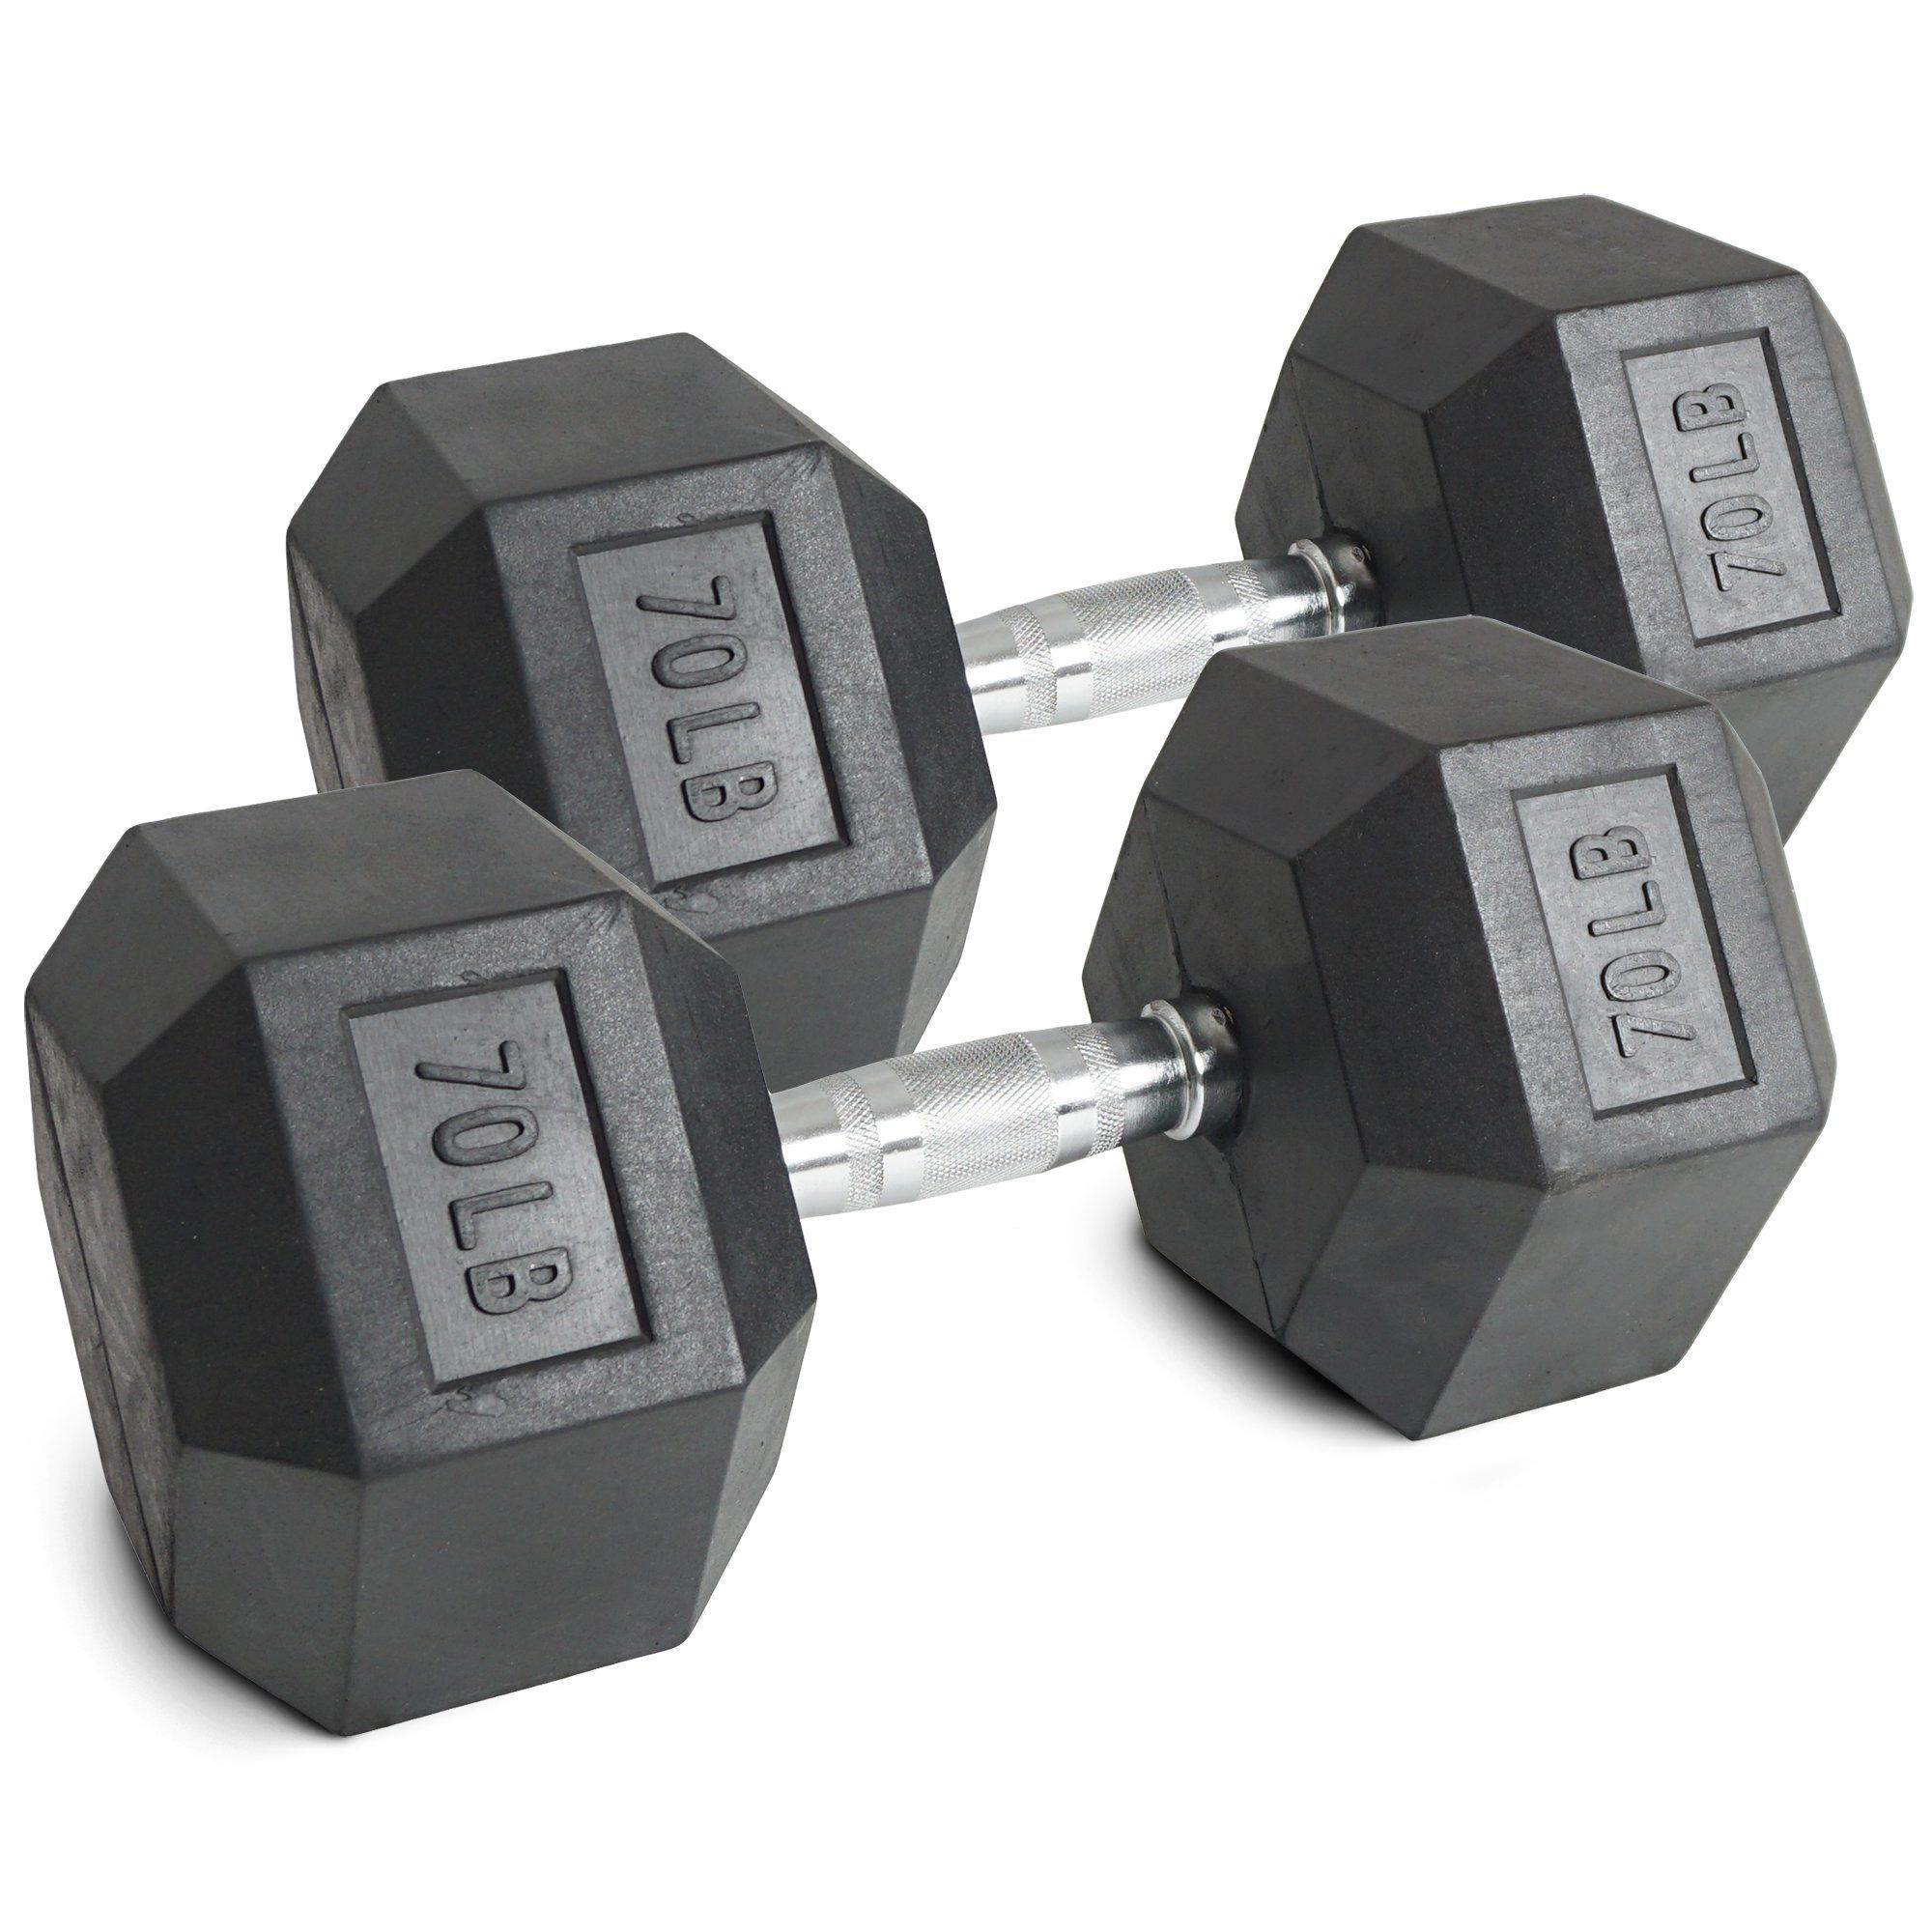 Pair 70 lb Black Rubber Coated Hex Dumbbells Weight Training Set 140 lb  Fitness. - Includes 2 rubber coated dumbbells - No assembly required.